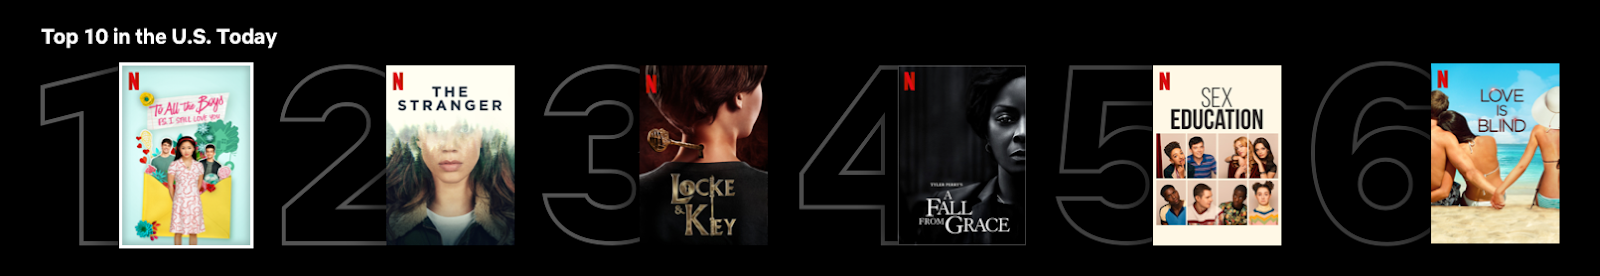 Netflix Top 10 Feature